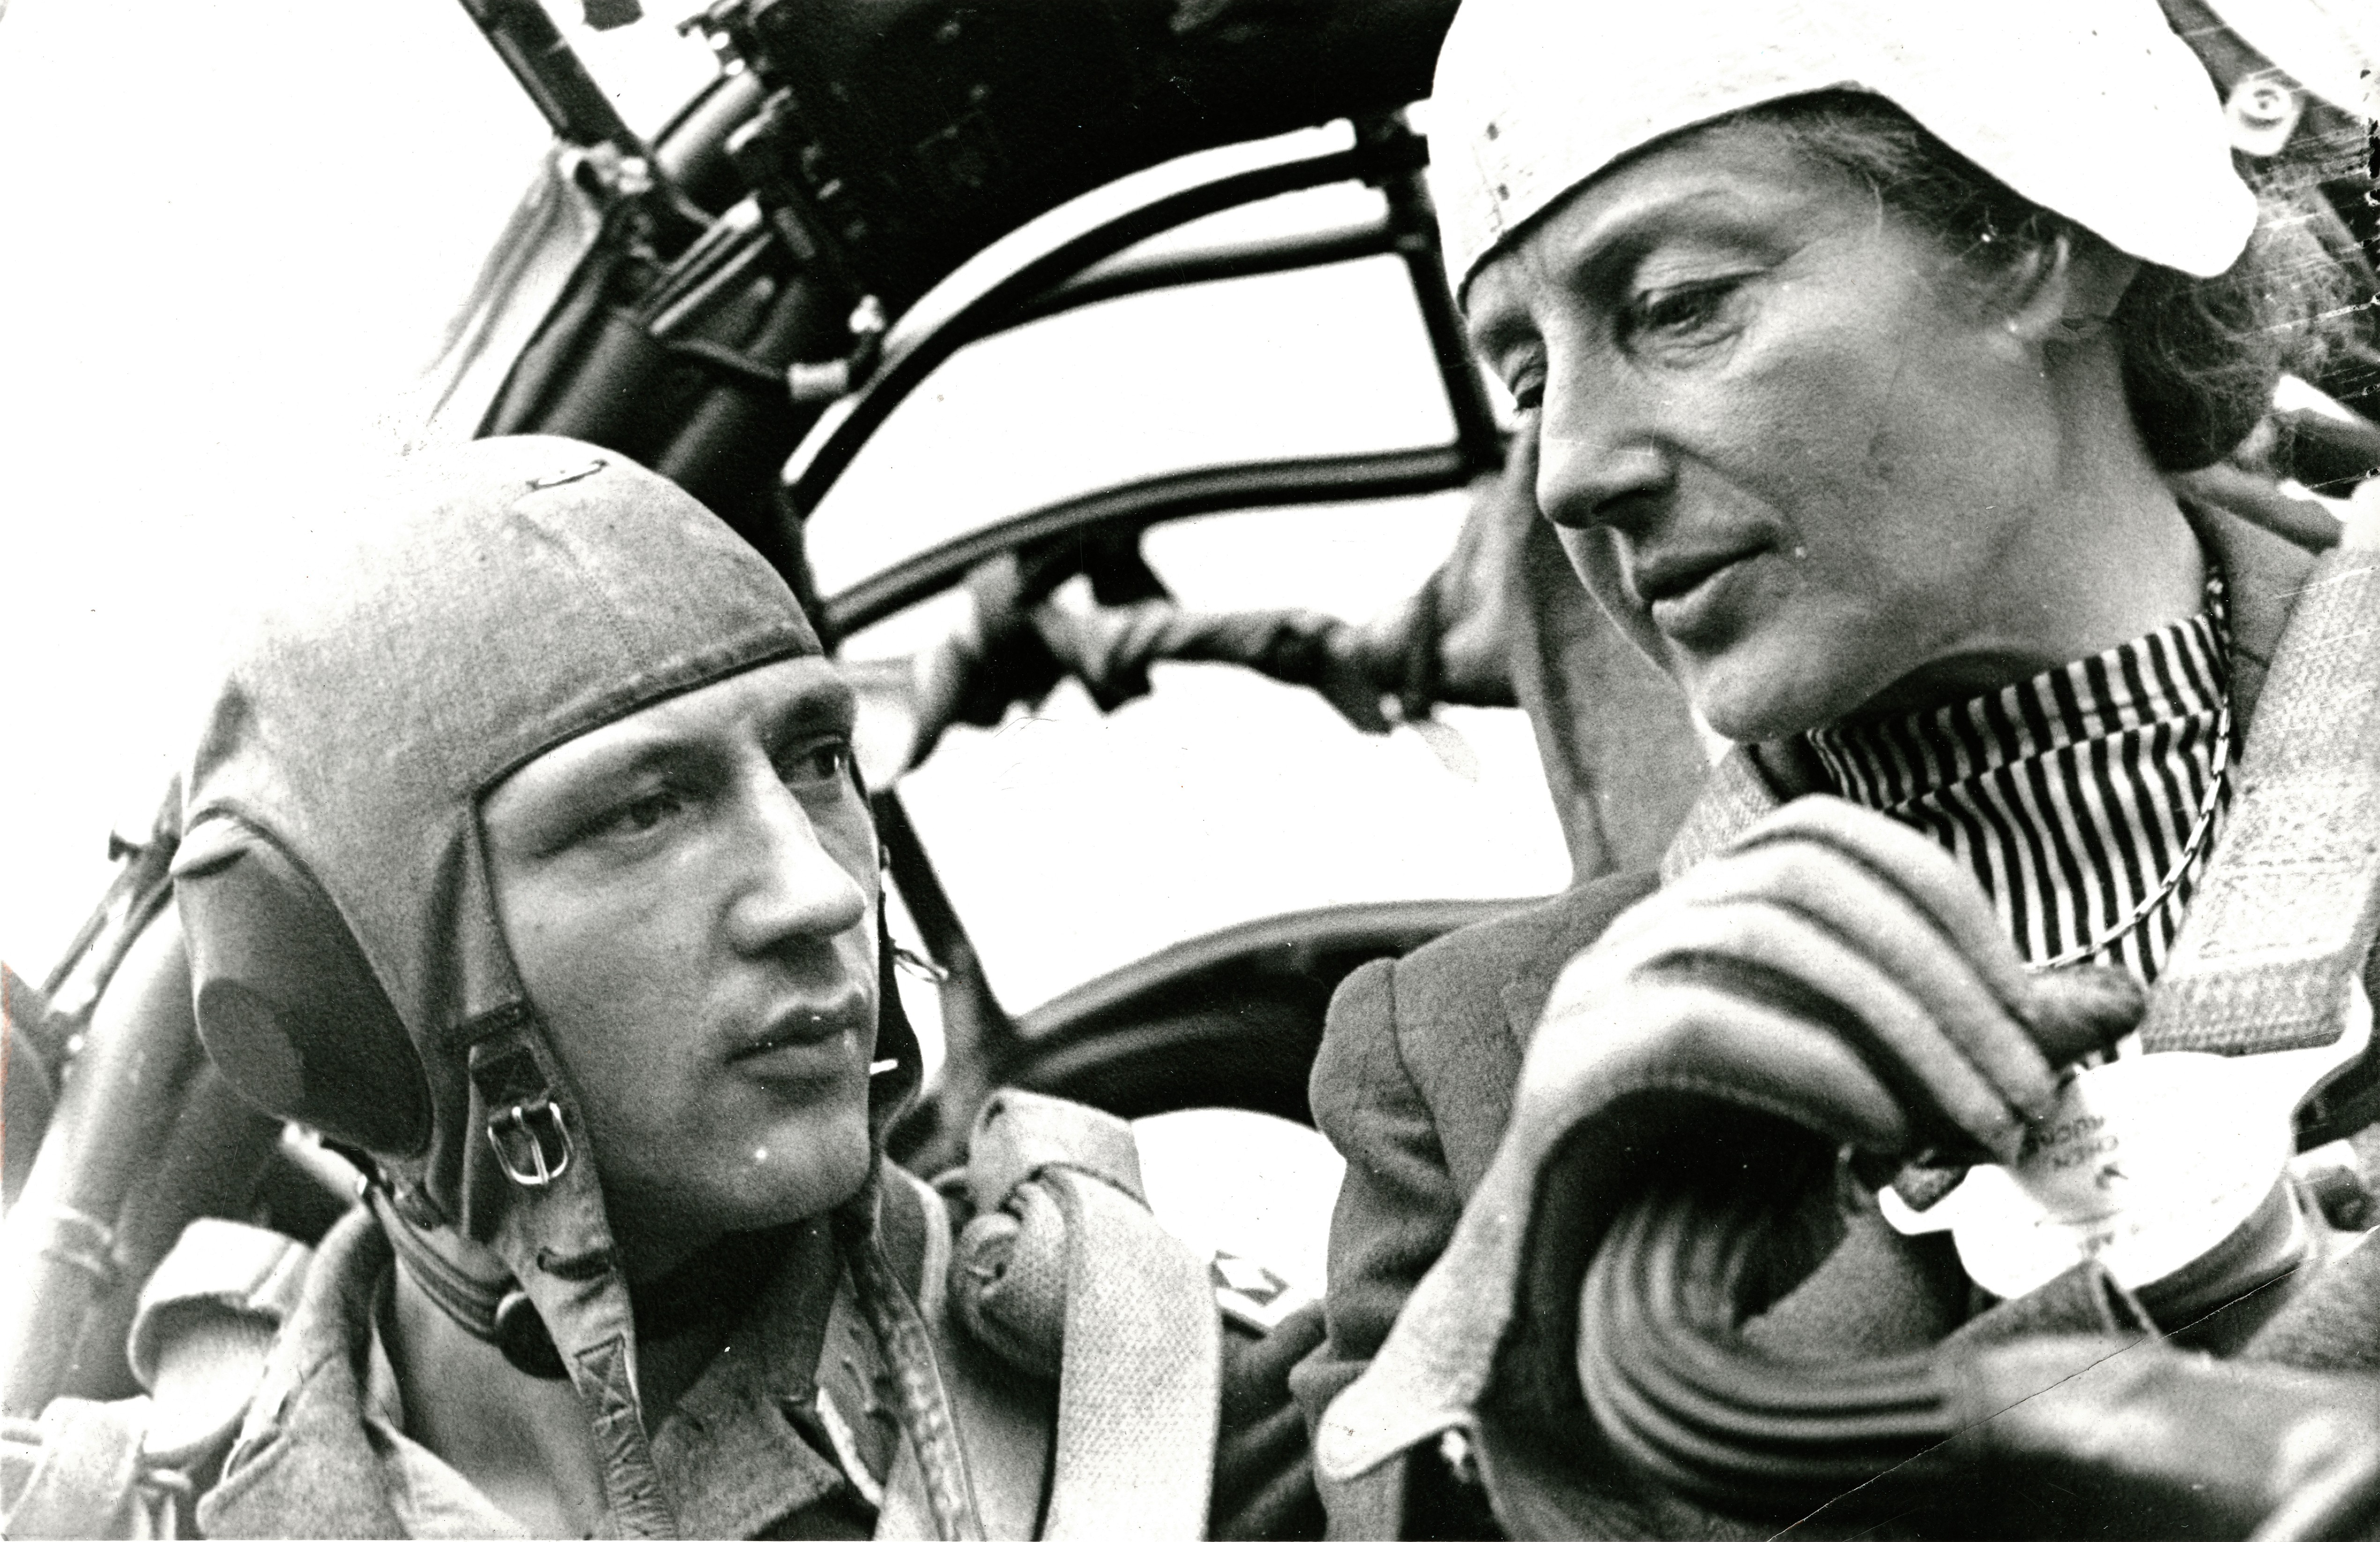 Test pilot Melitta Schiller (right), Berlin, June 1943. (Photo by DRK/ullstein bild via Getty Images)